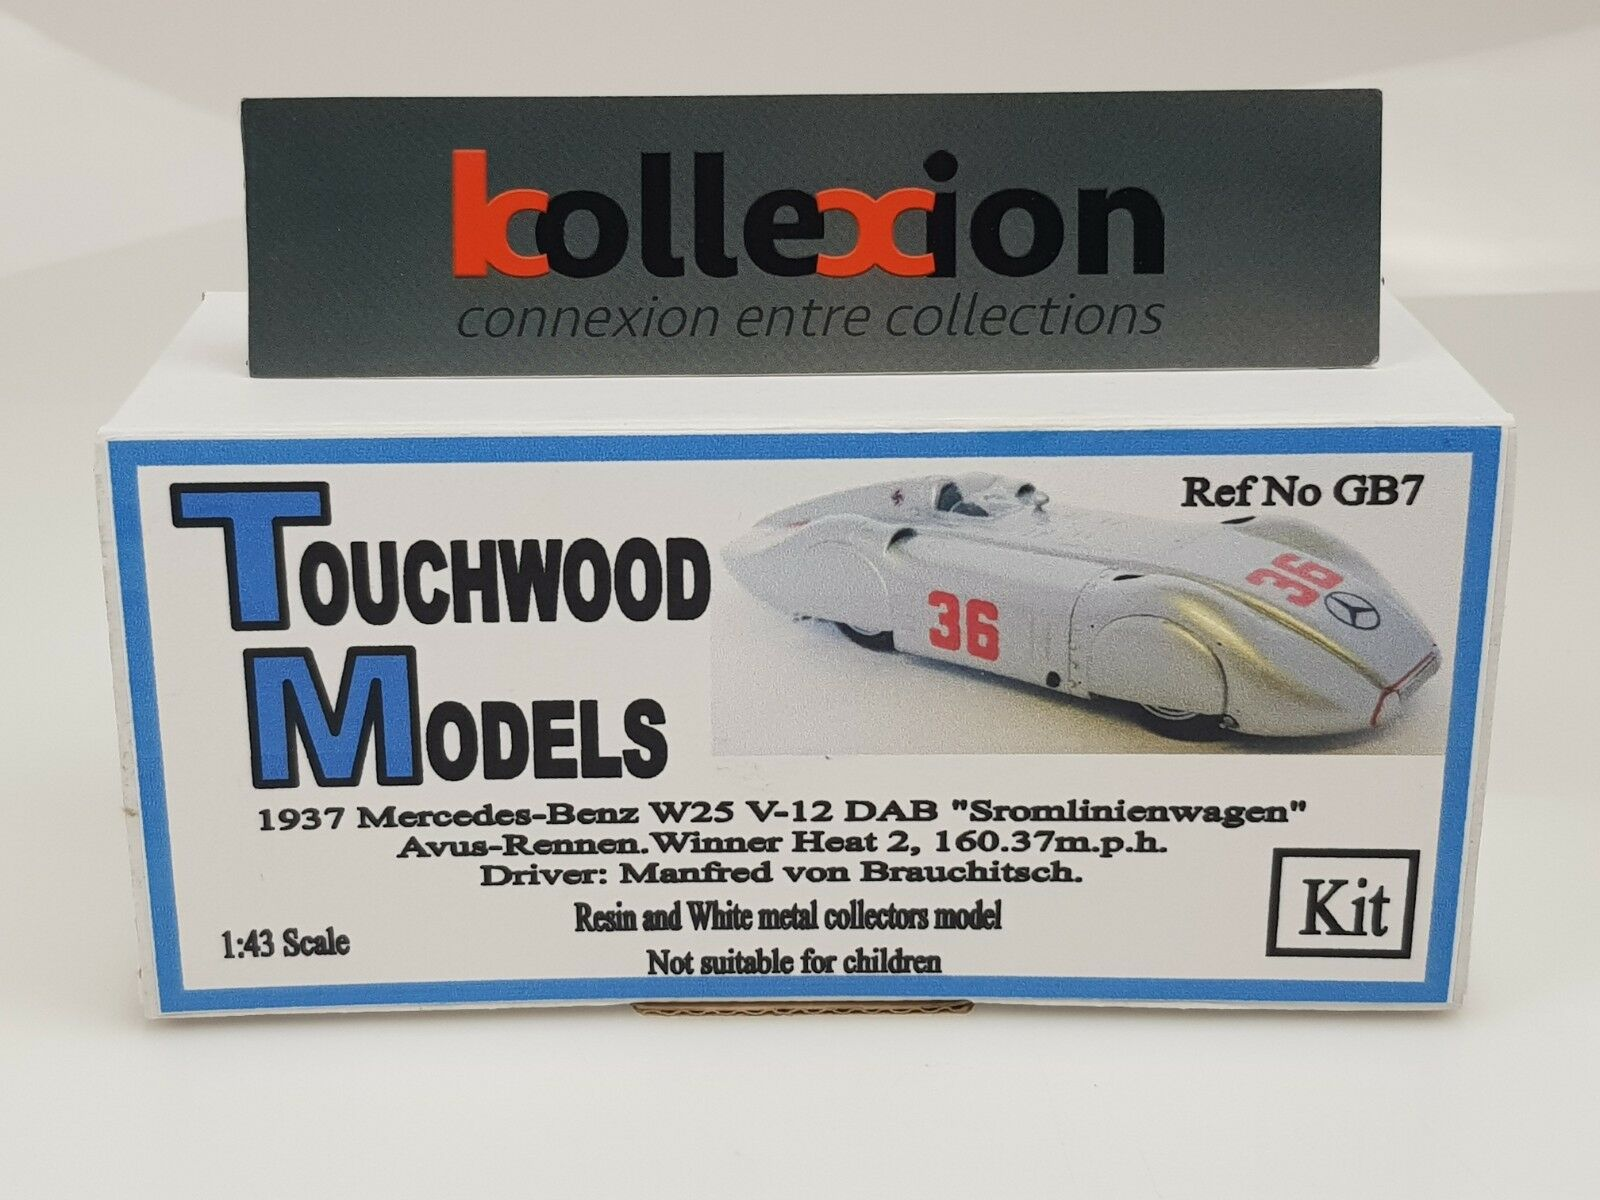 TOUCHWOOD MODELS TWCGB7 MERCEDES BENZ W125 STROMIENEN Record Avus 1937 Kit 1.43